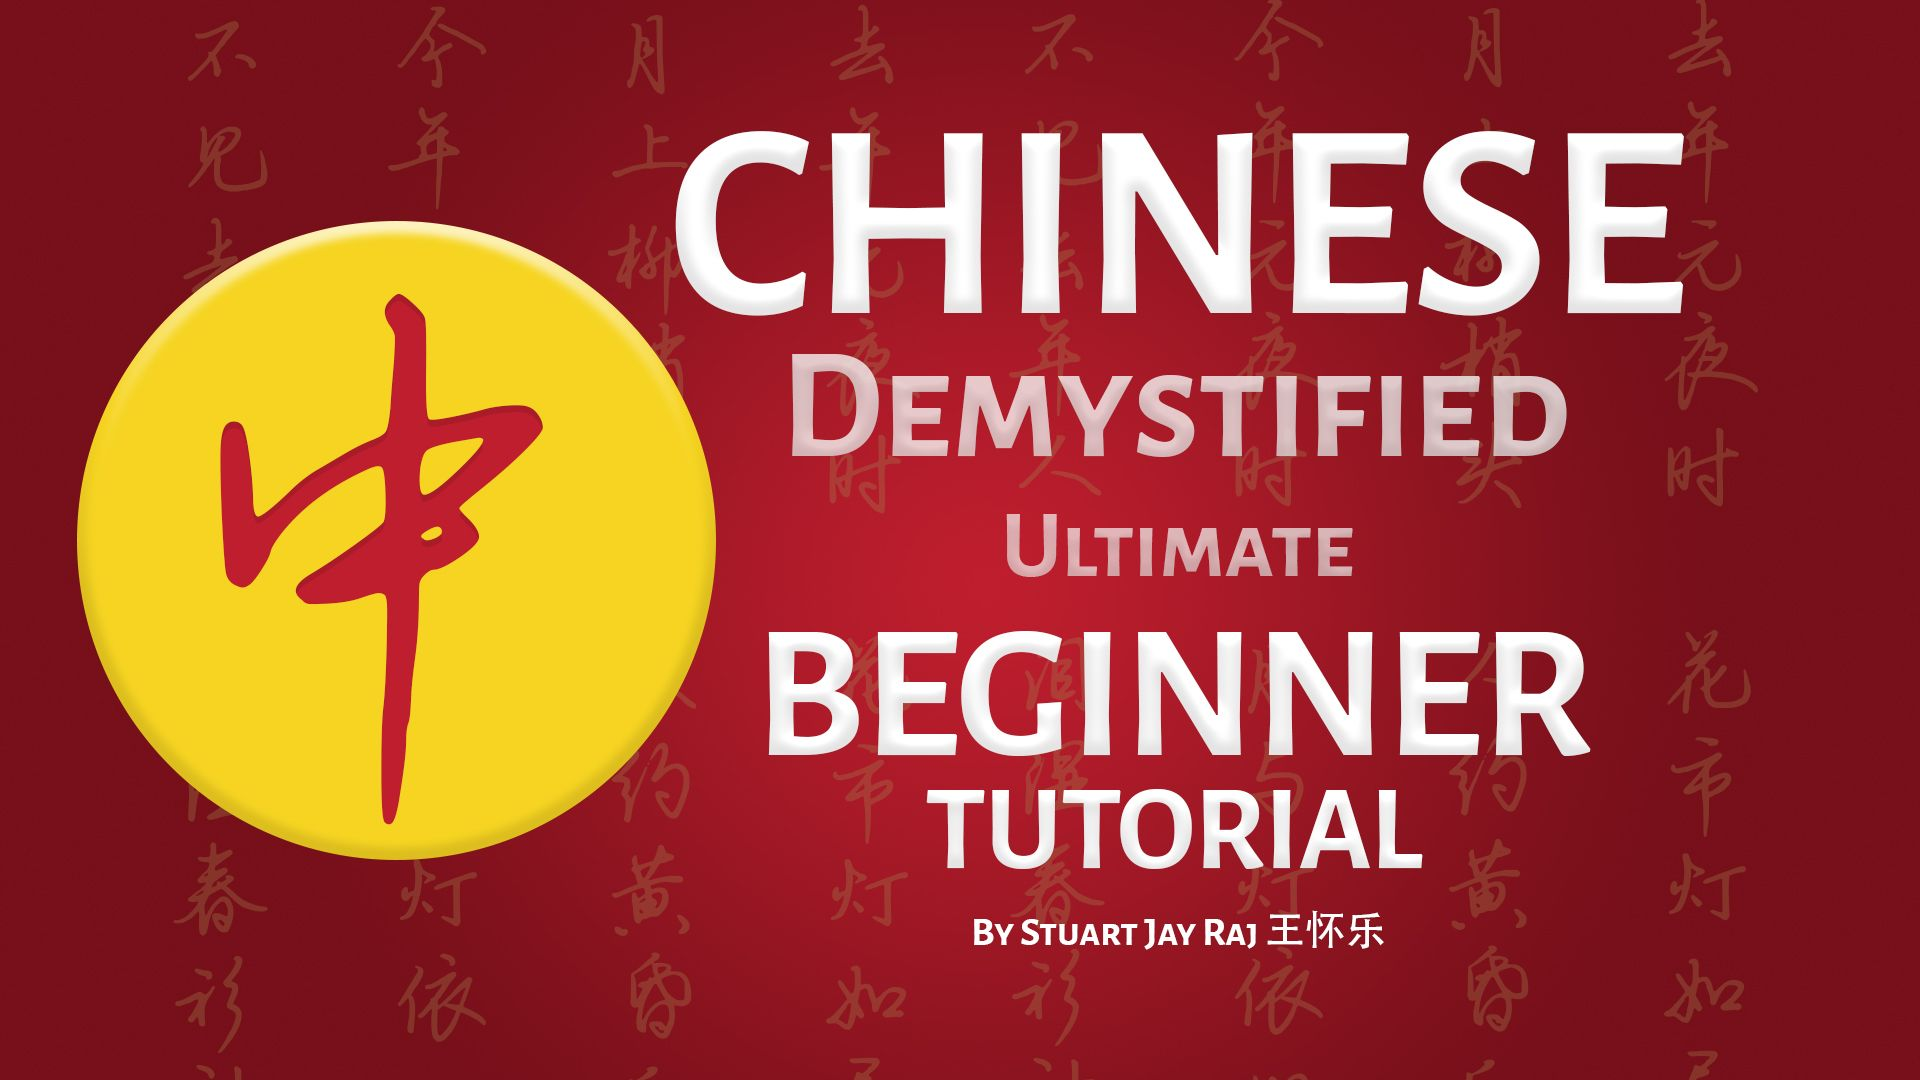 Chinese Language Demystified - Ultimate Learner's Beginner Tutorial